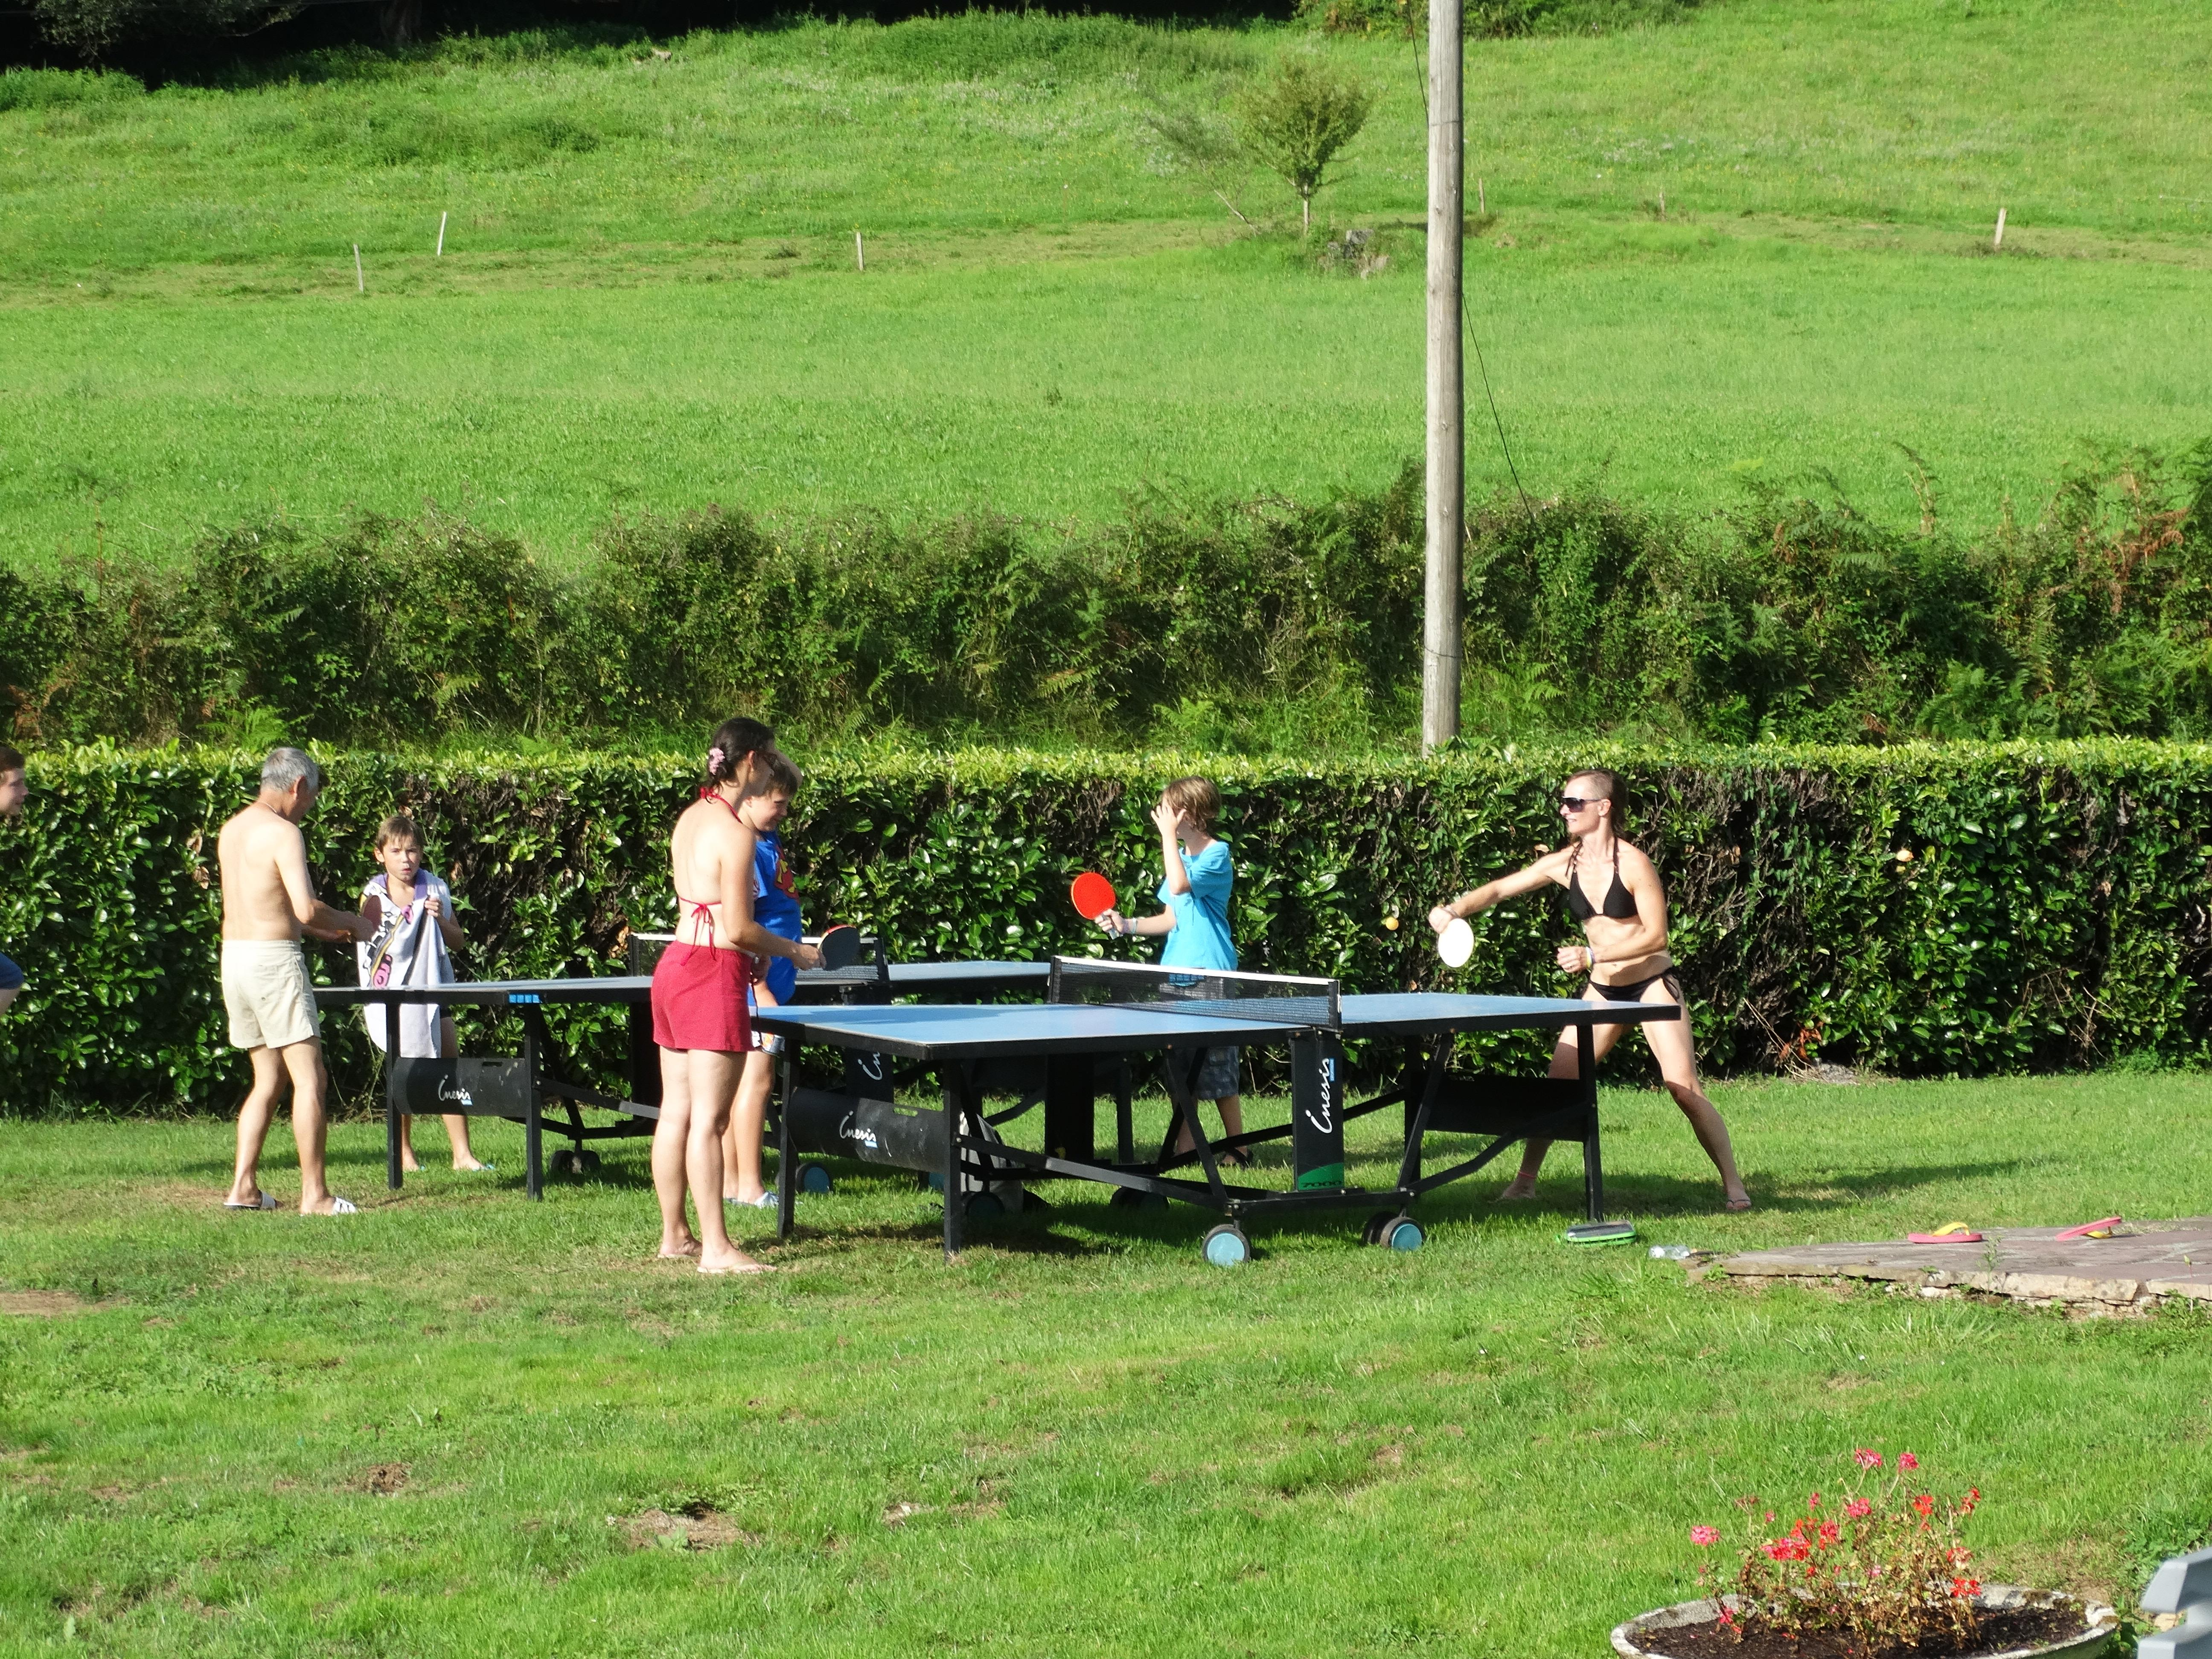 Sport Camping A l'Ombre des Tilleuls - PEYROUSE